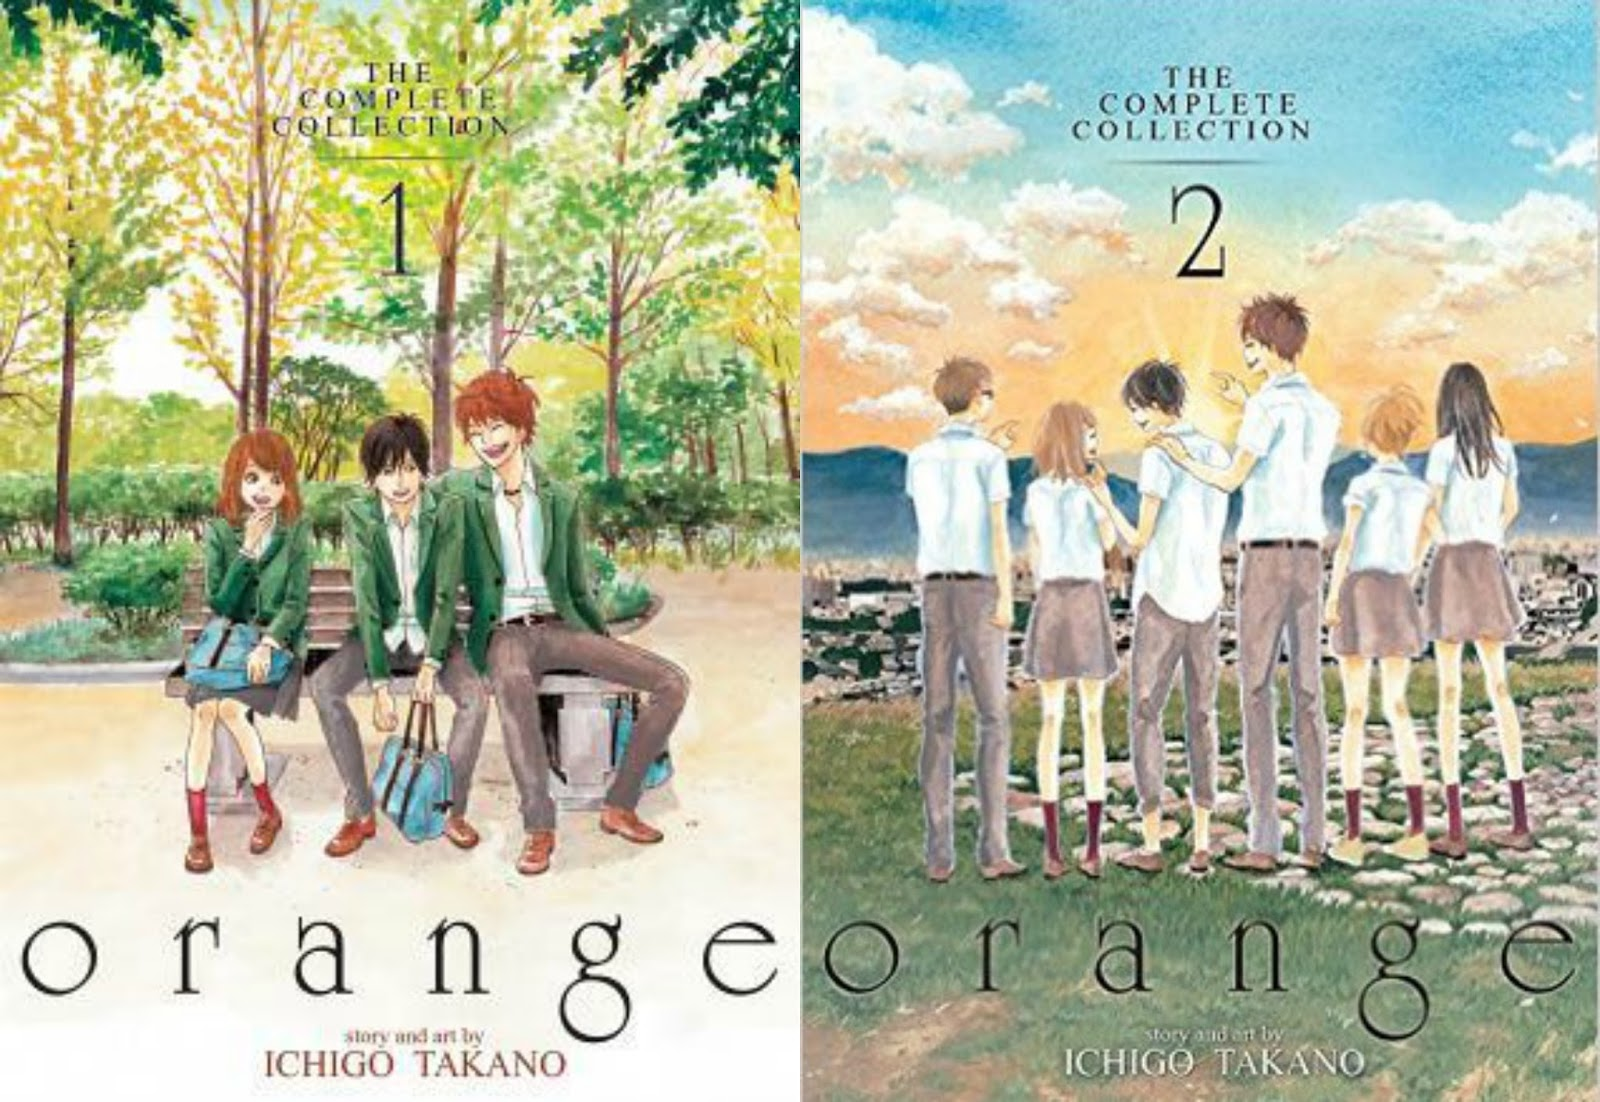 Orange: The Complete Collection book covers